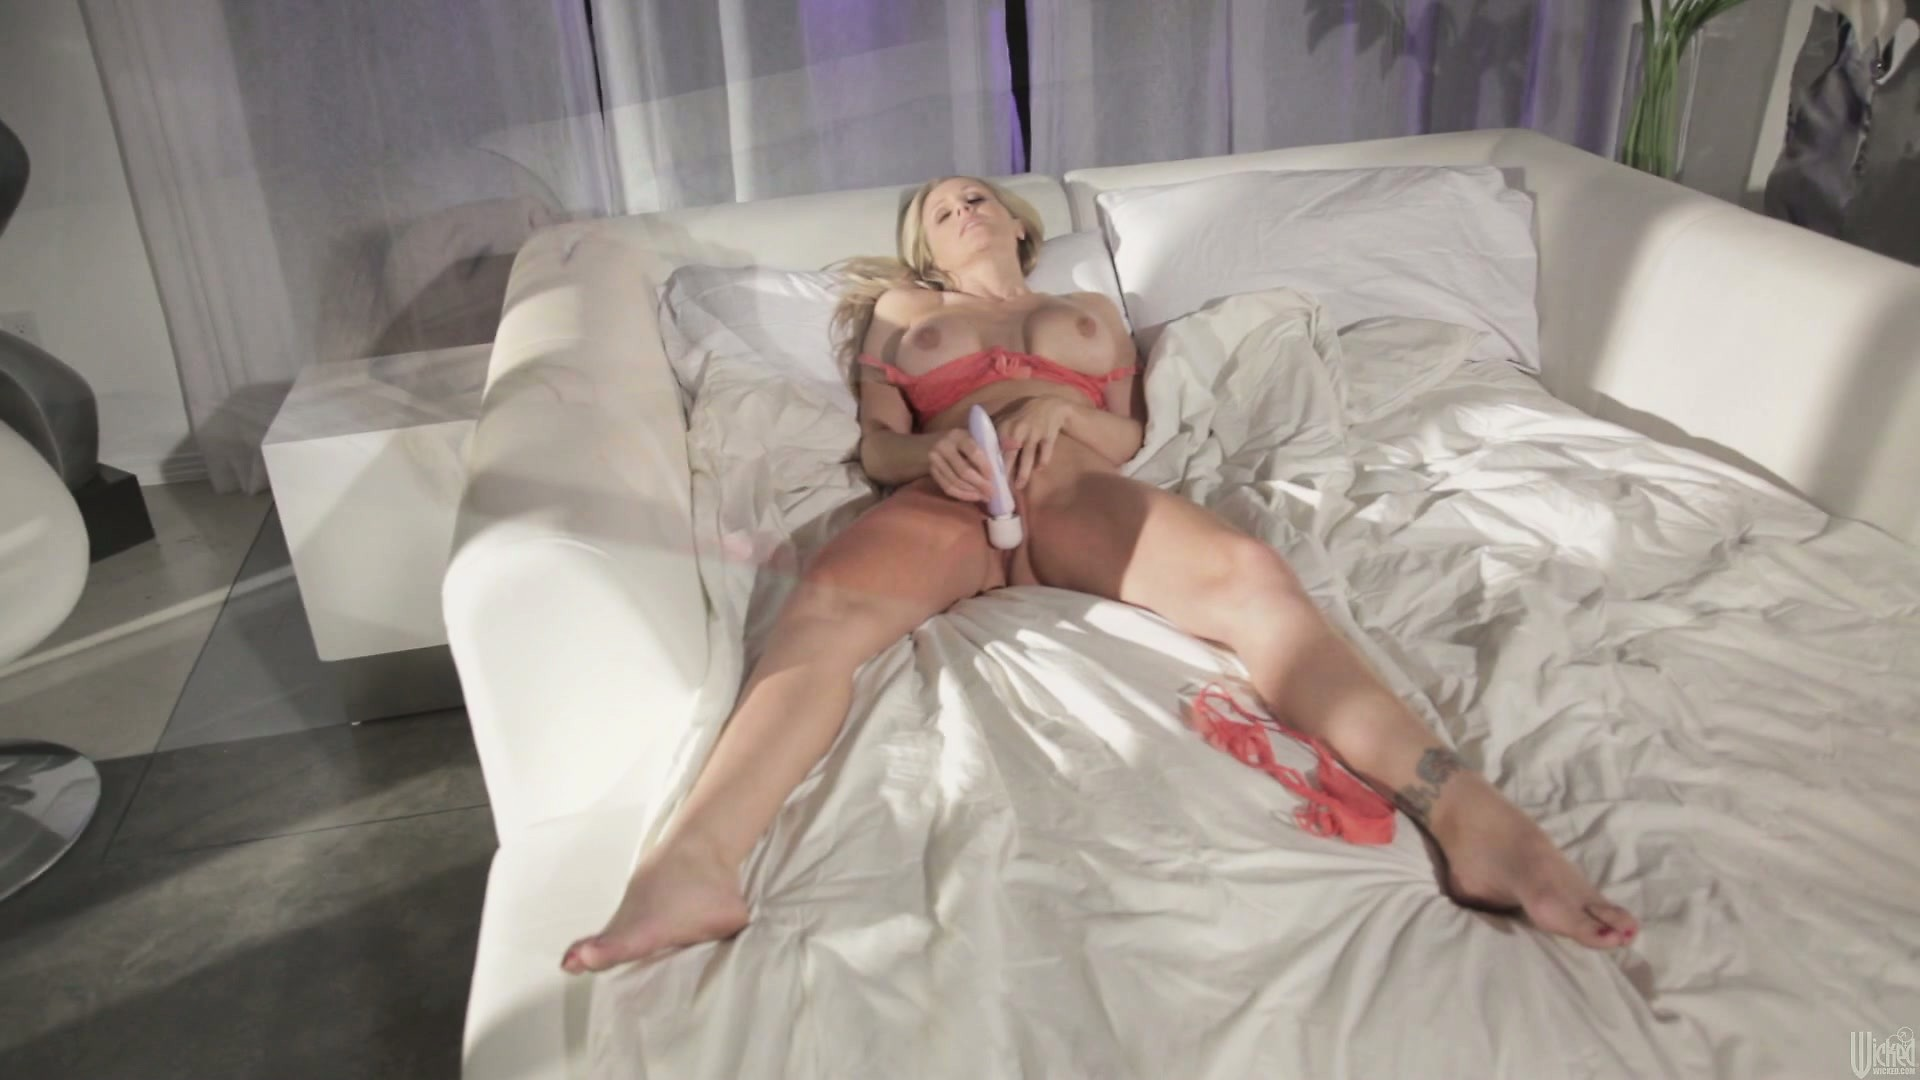 Porno Video of She Follows Her Own Guide And Uses Her Vibrator For A Nice Orgasm